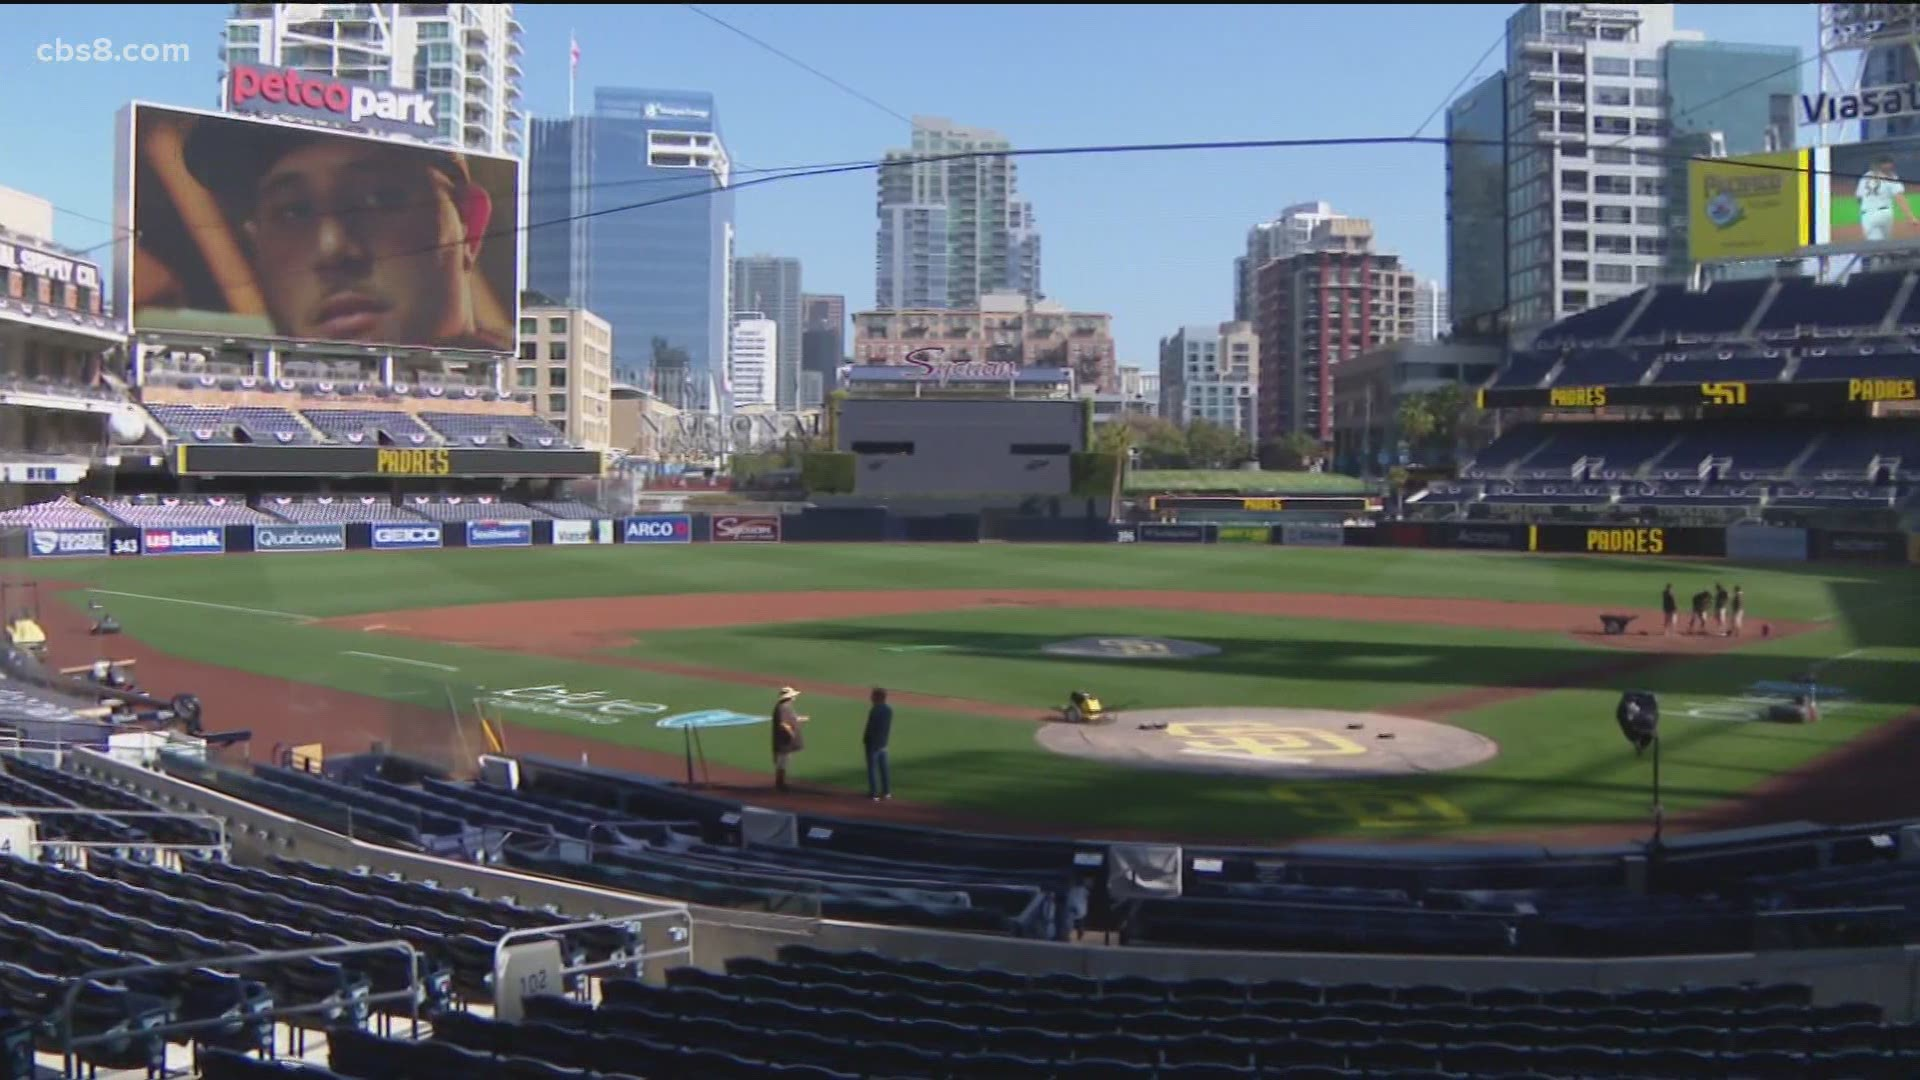 Tips so you don't strike out when heading to Padres games this season | cbs8.com